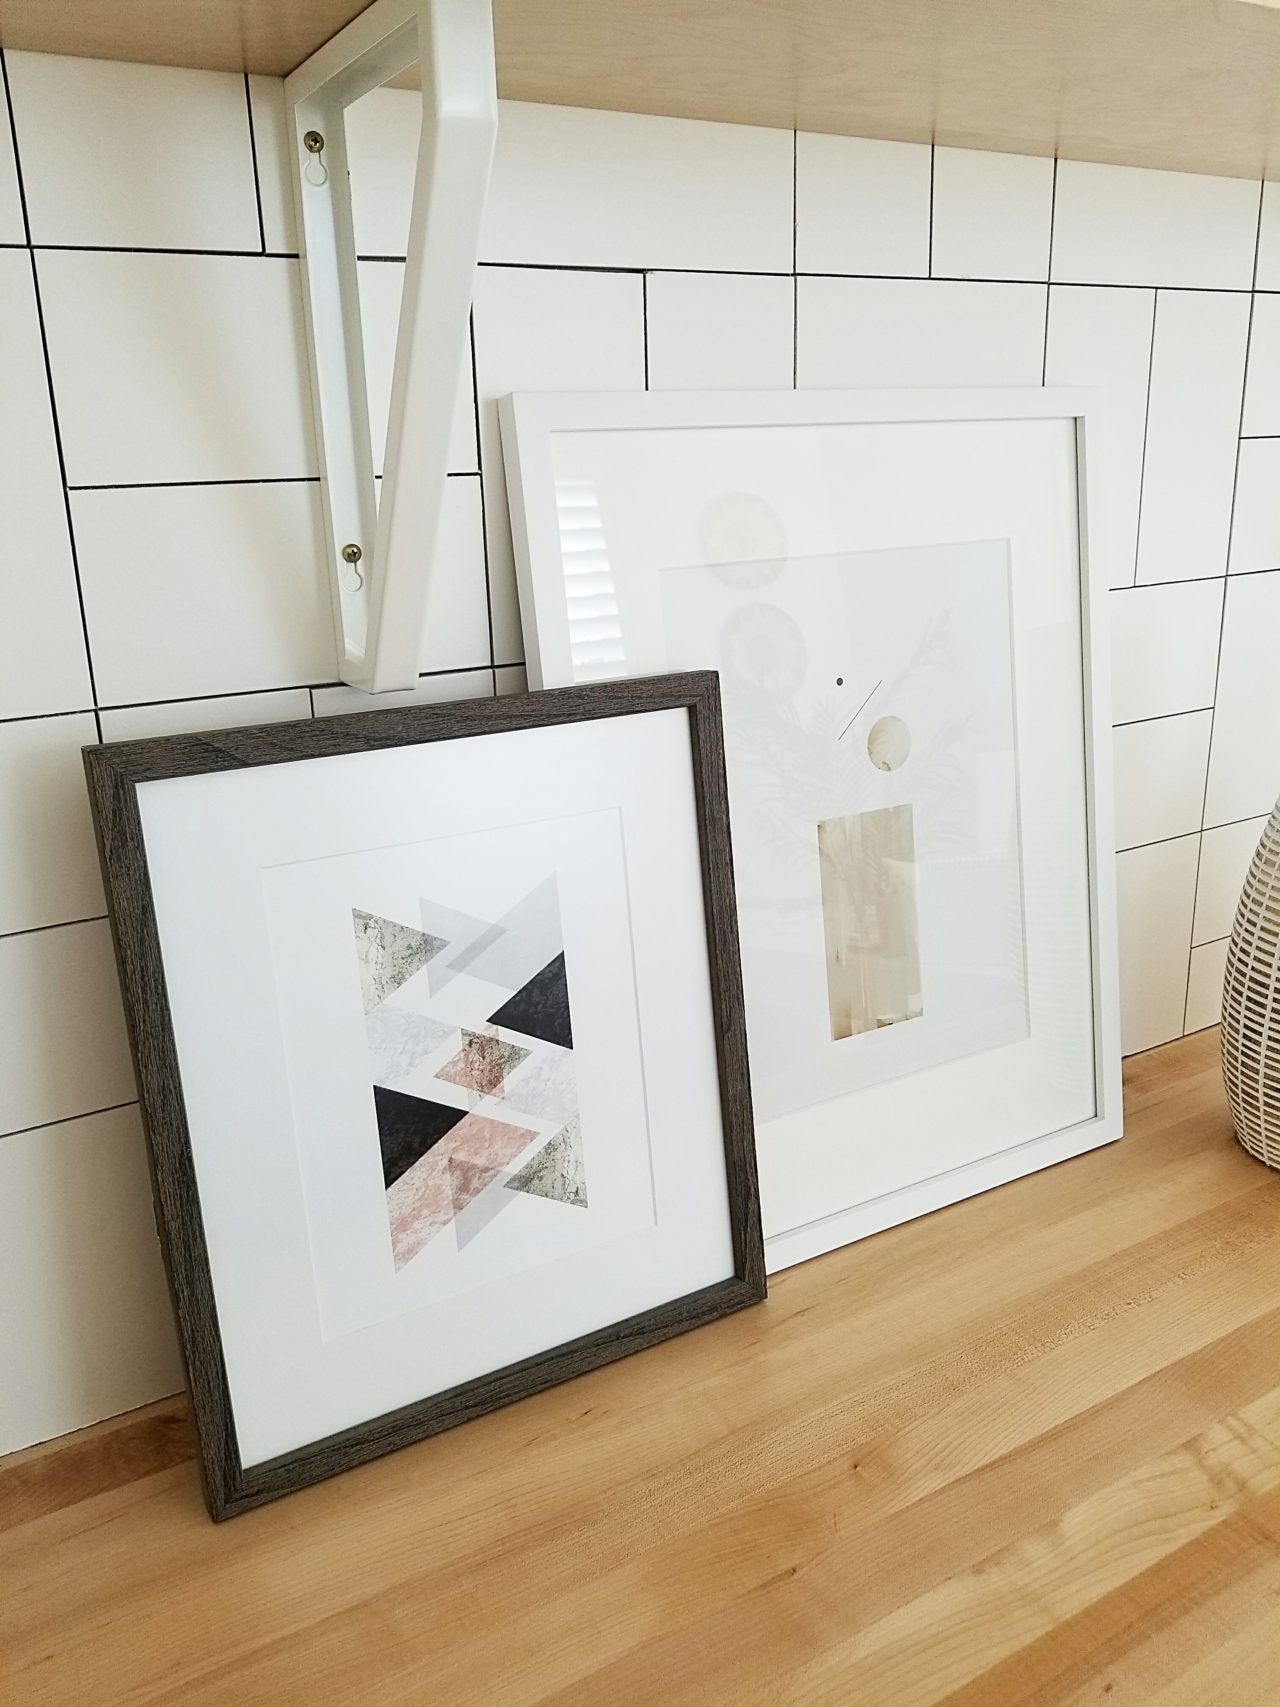 Large Frame Mat An Easy Way To Add Art To Your Home With Art To Frames